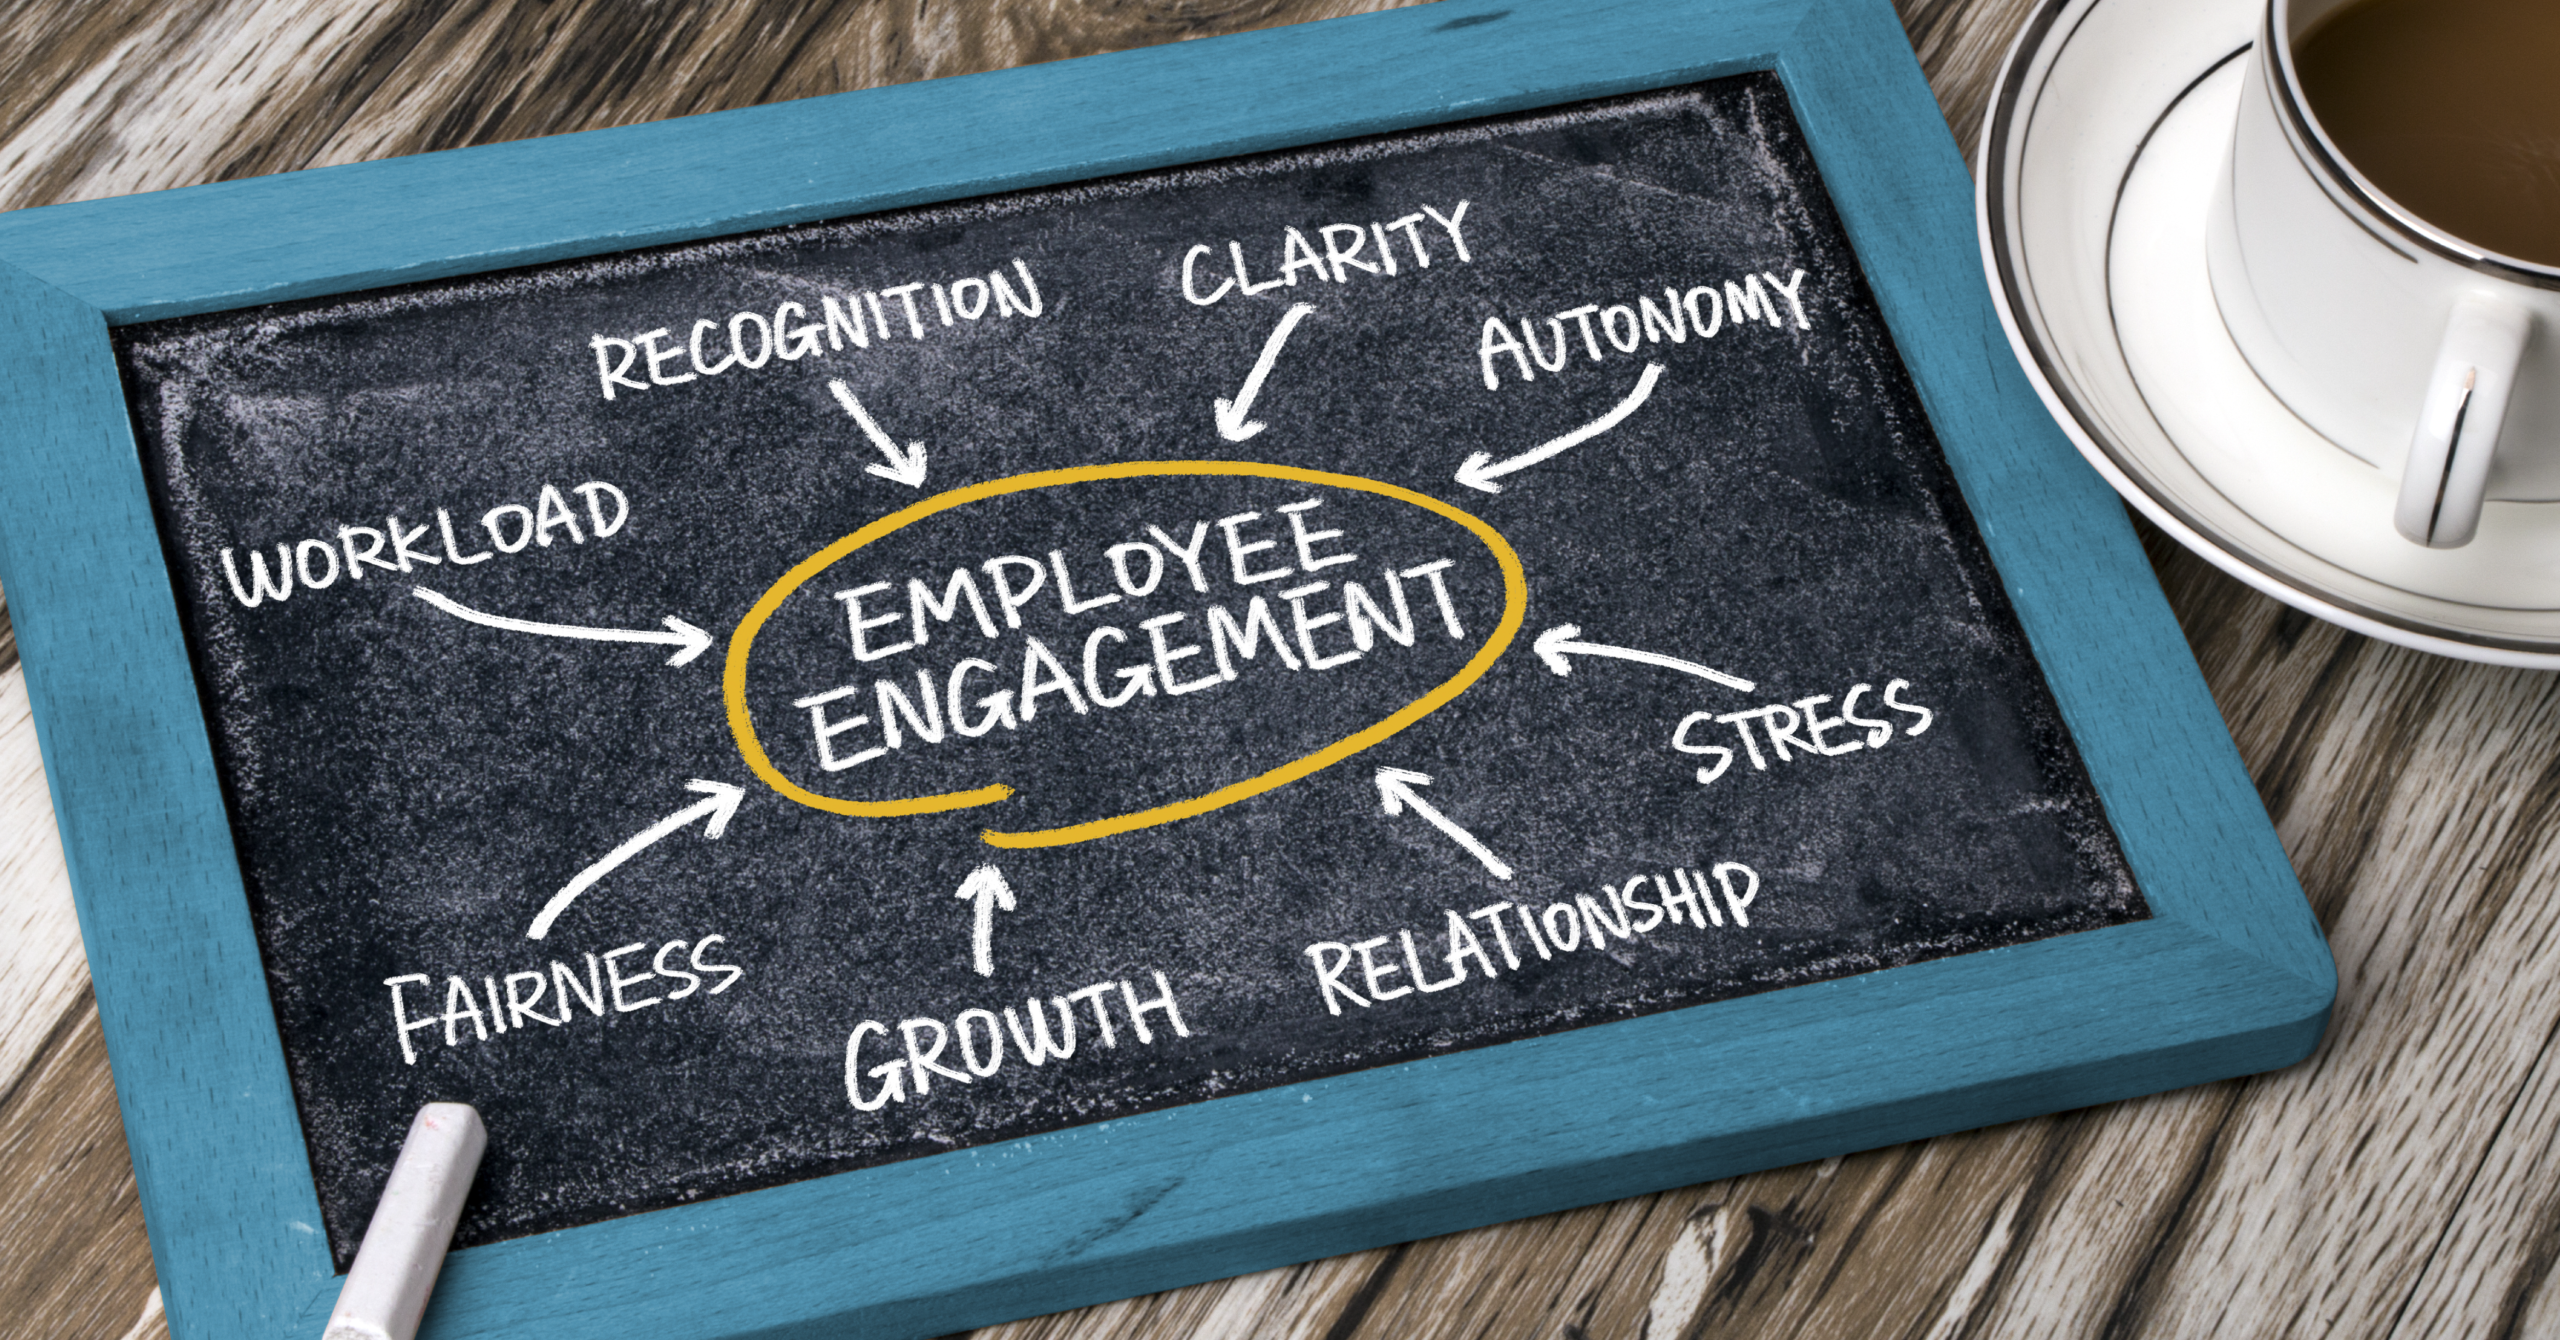 ISO 10018: Quality Management and Employee Engagement